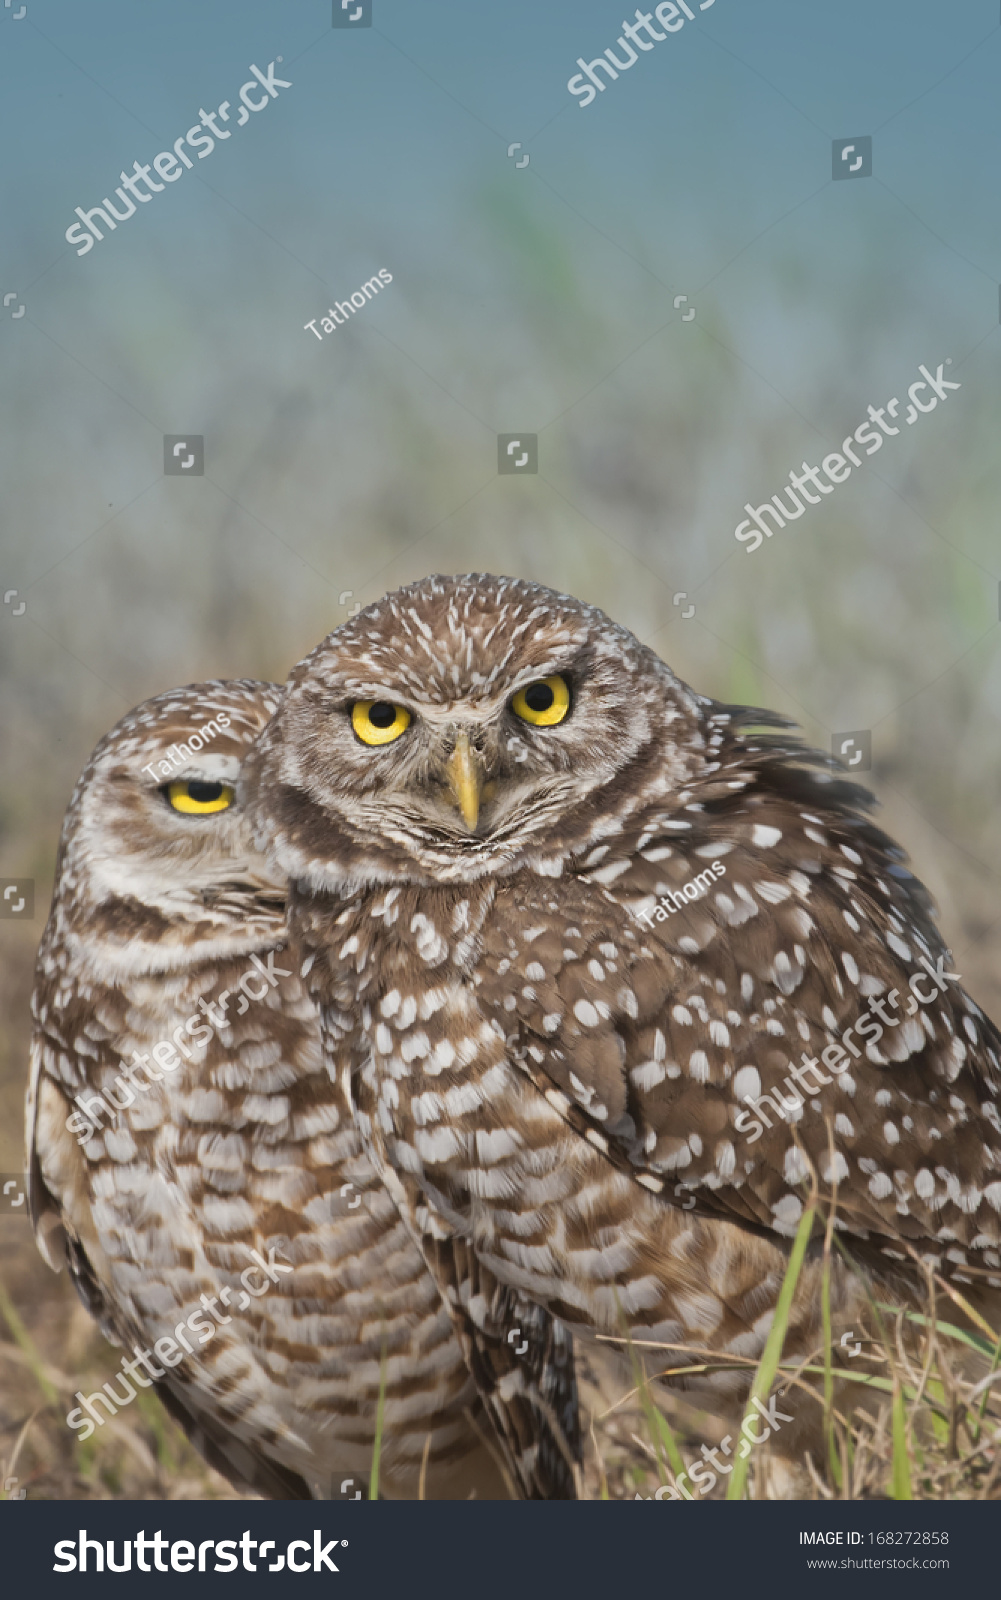 Burrowing owls lean on each other. Latin name - Athene cunicularia.